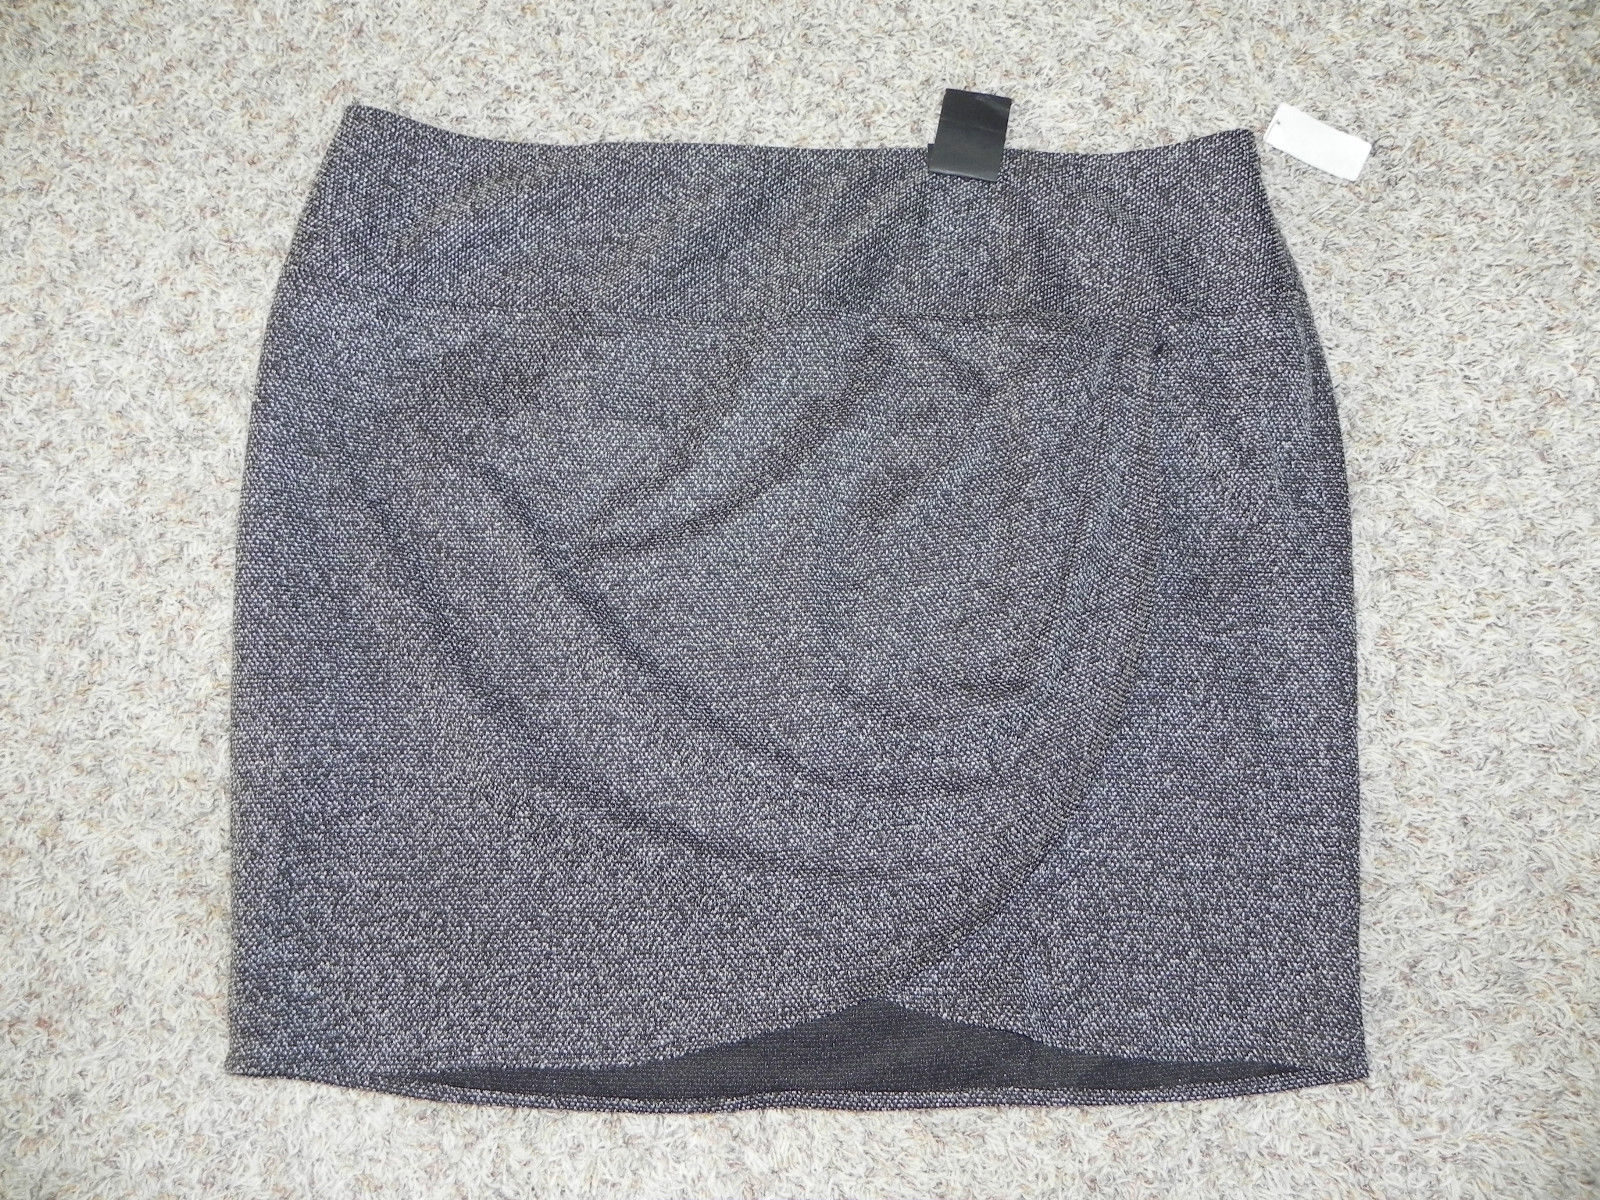 Primary image for Lane Bryant Skirt Plus Size 28 Black Multi-Color Length 23 inches NWT $49.95